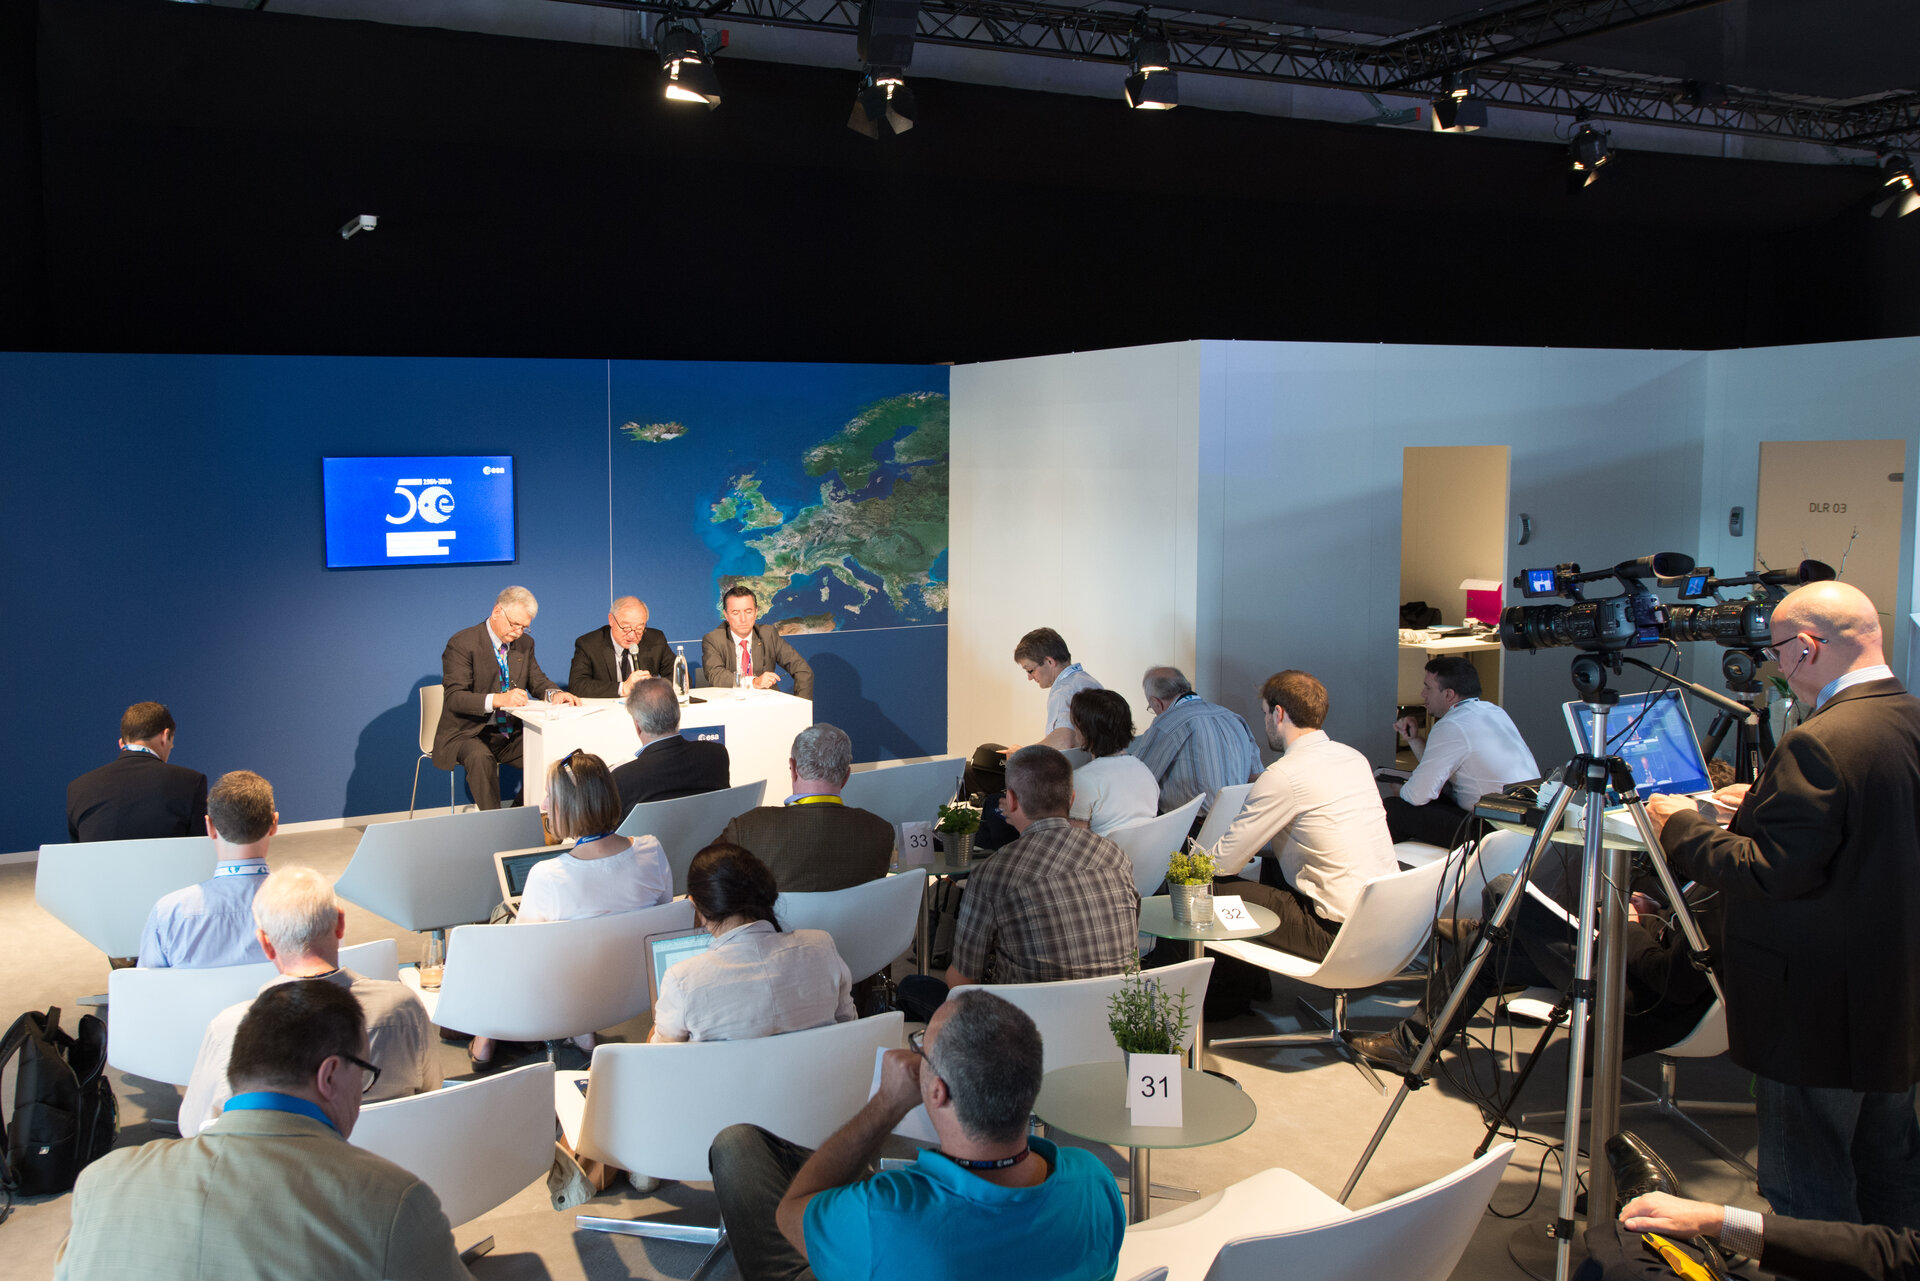 Press conference with Jean-Jacques Dordain